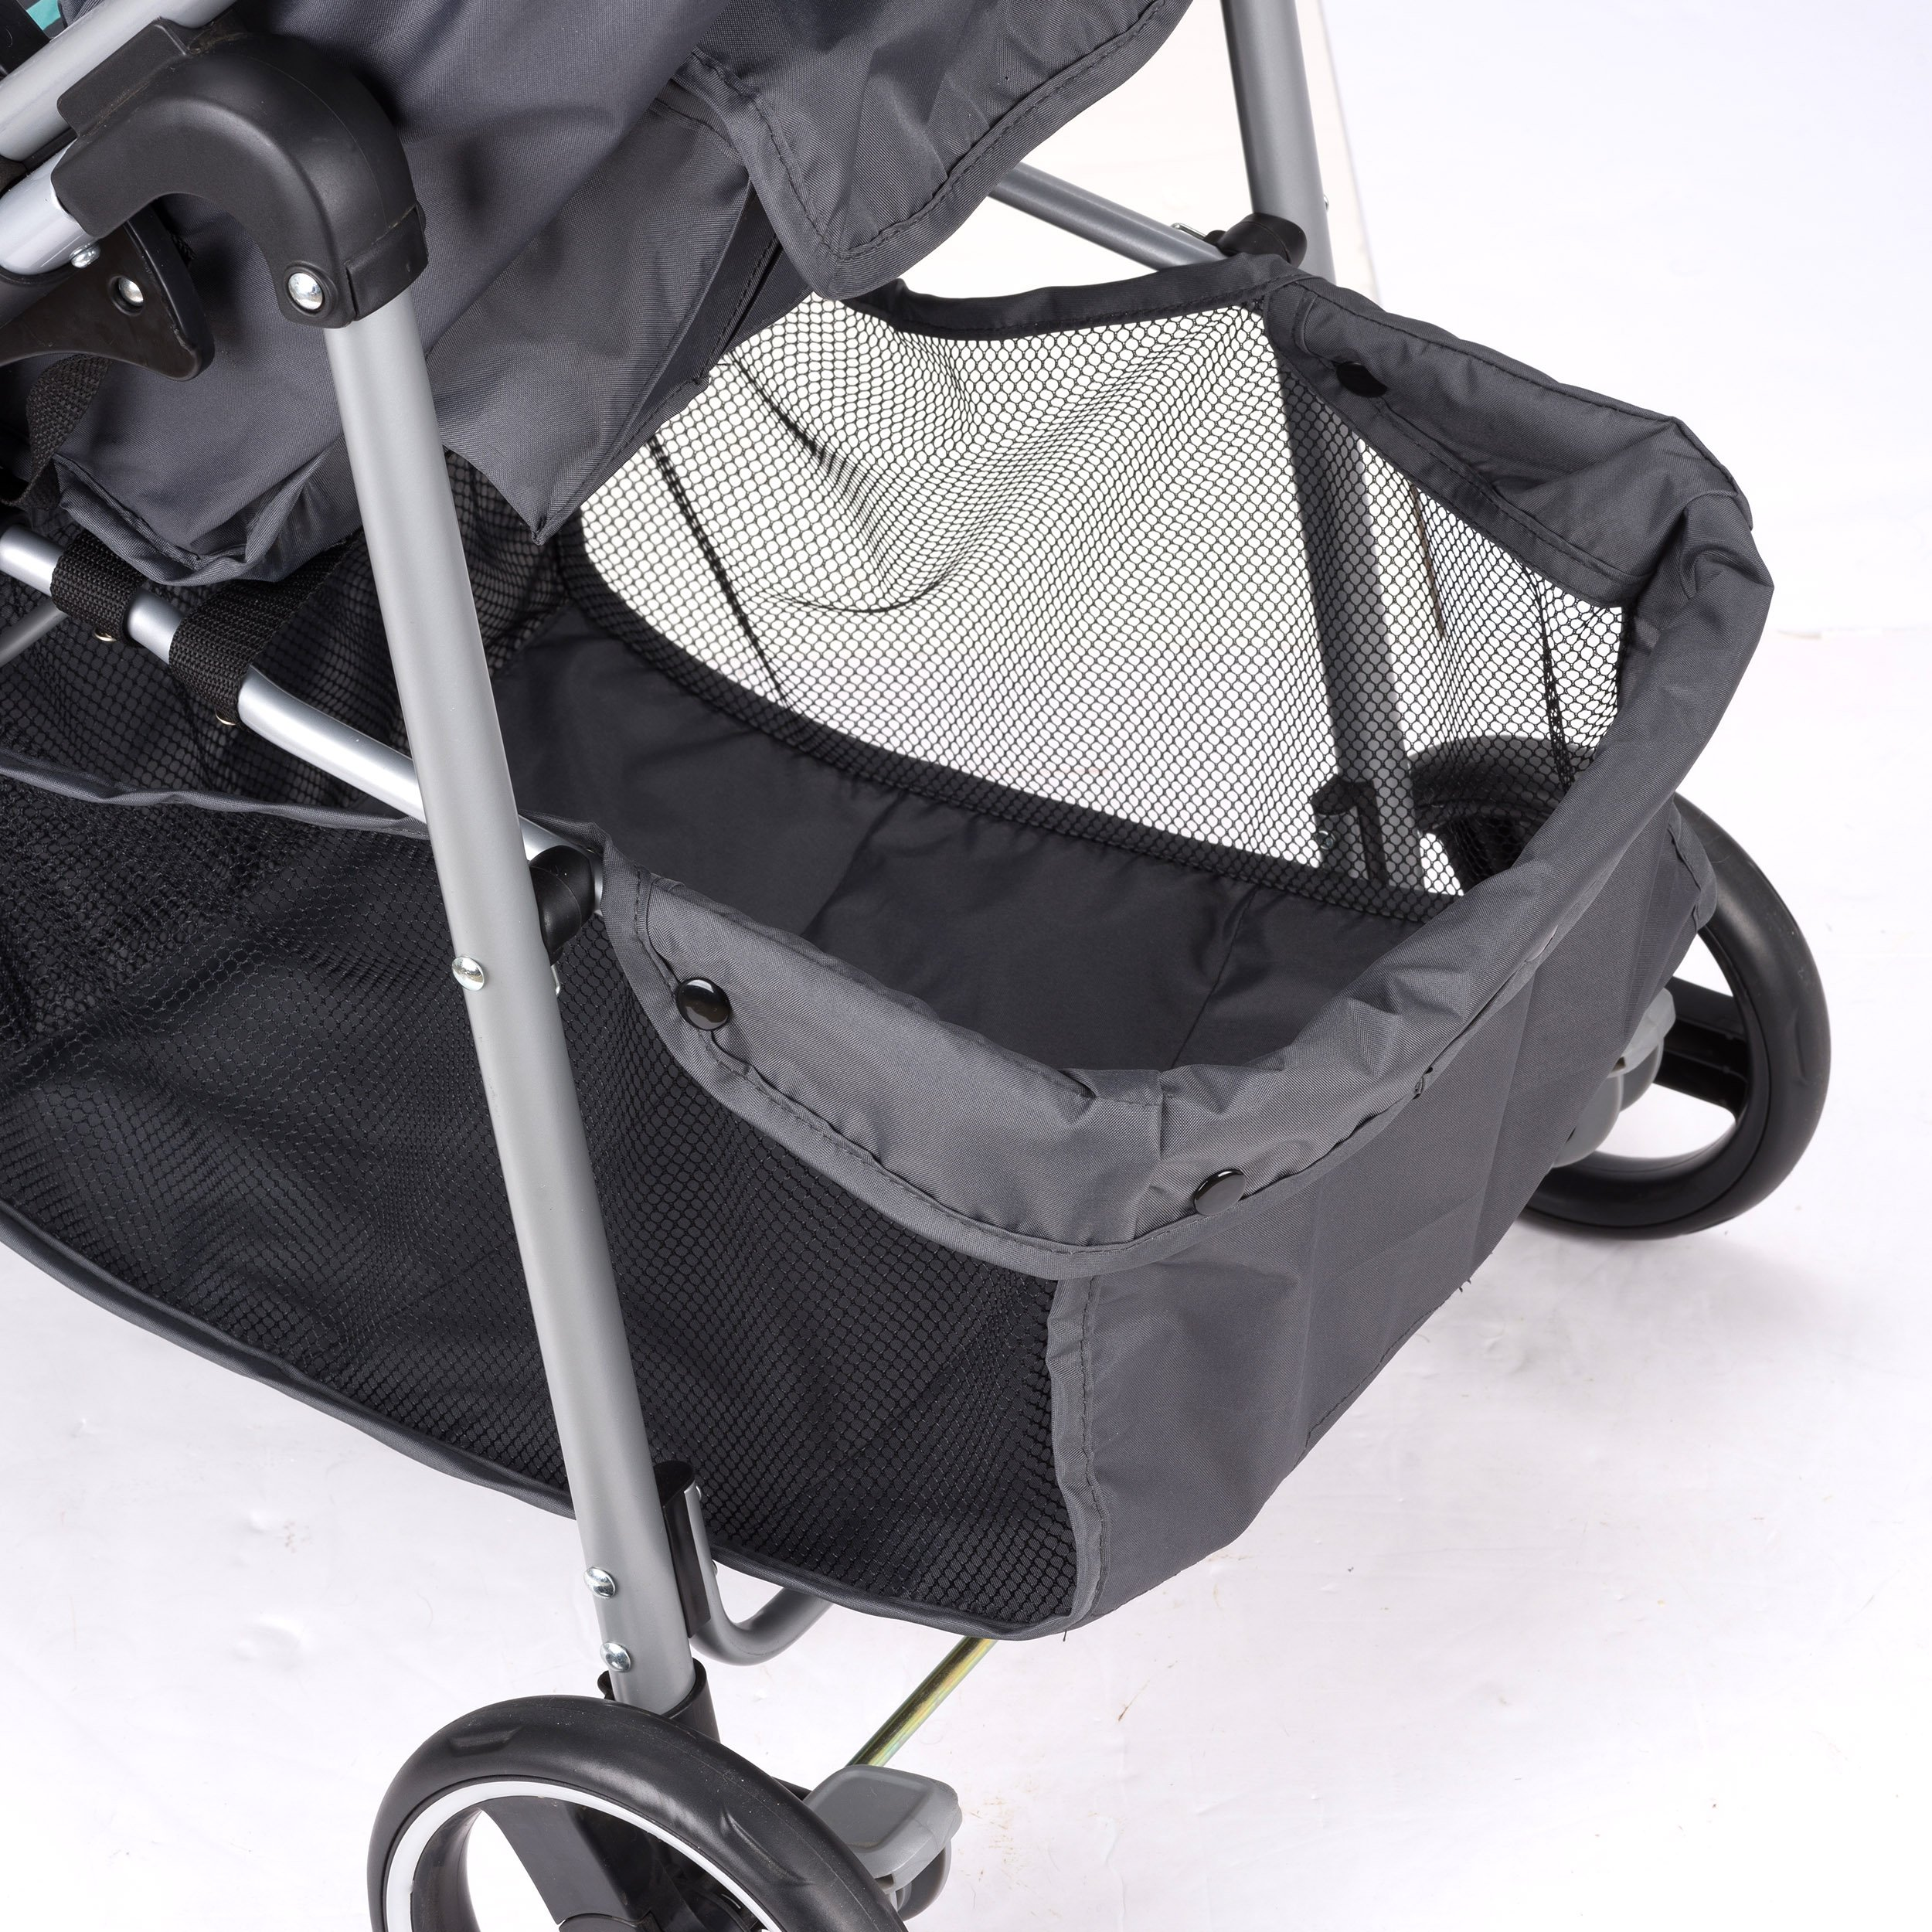 Evenflo Vive Travel System with Embrace, Spearmint Spree by Evenflo (Image #10)